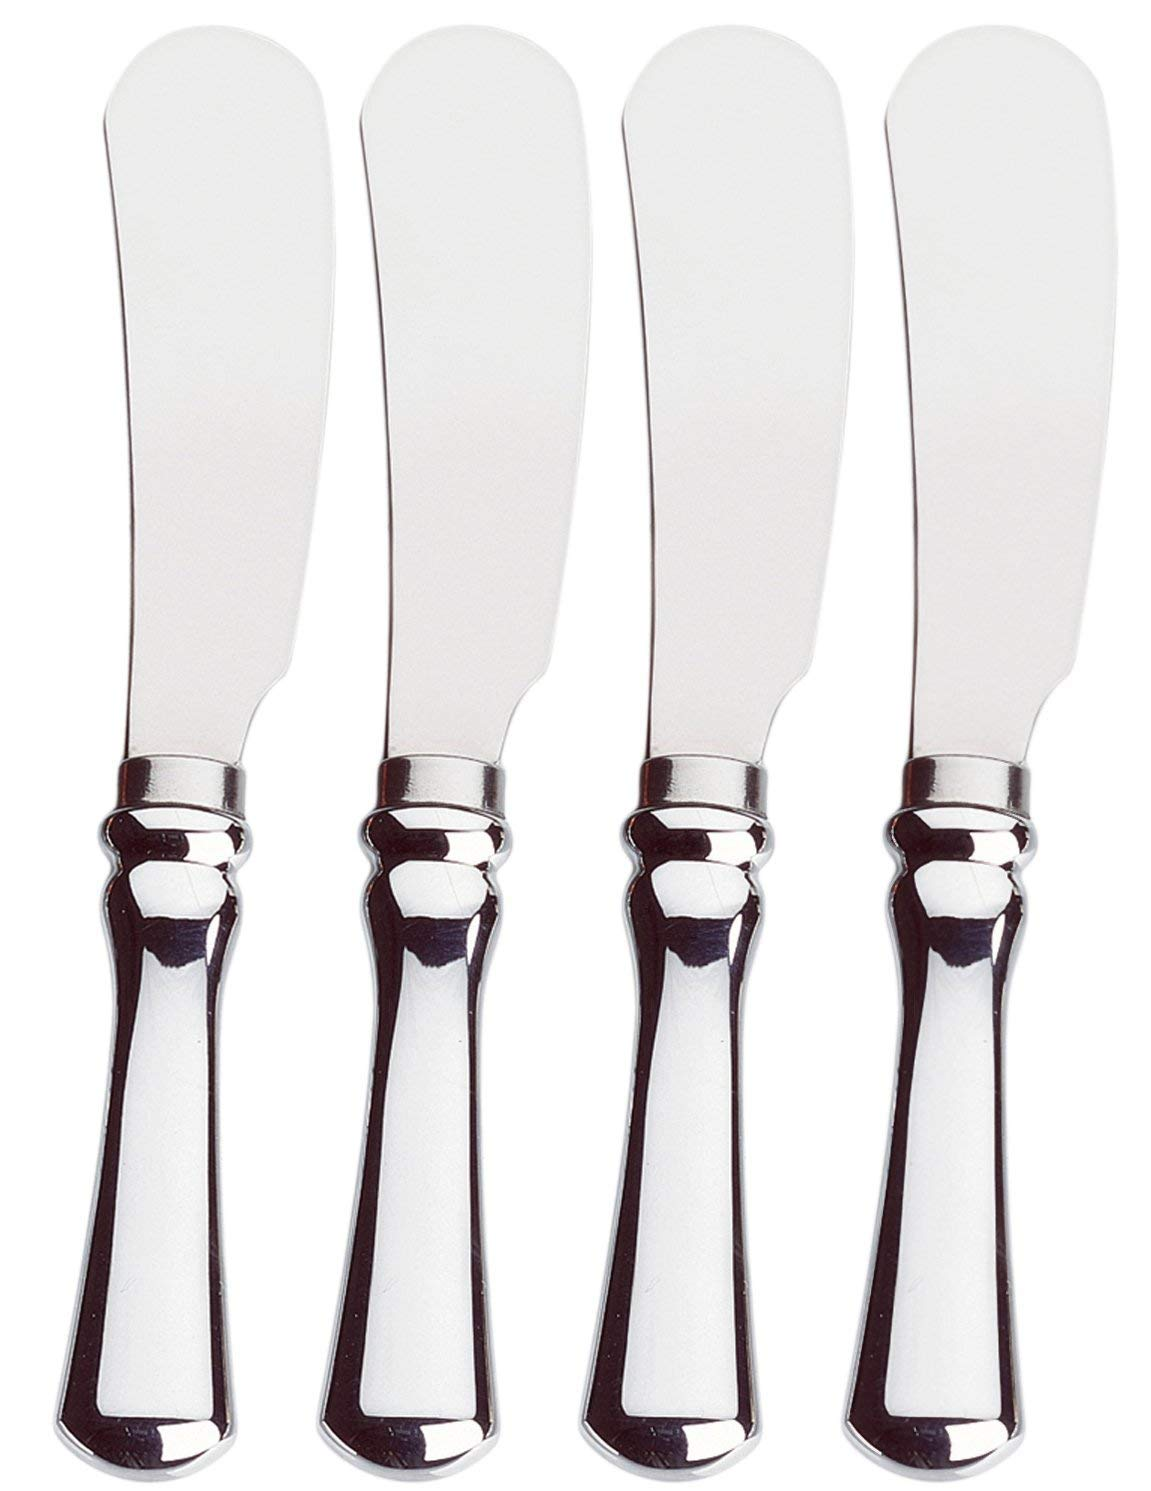 Set of 4 Stainless Steel Cheese Appetizer Spreaders Spreading Knives